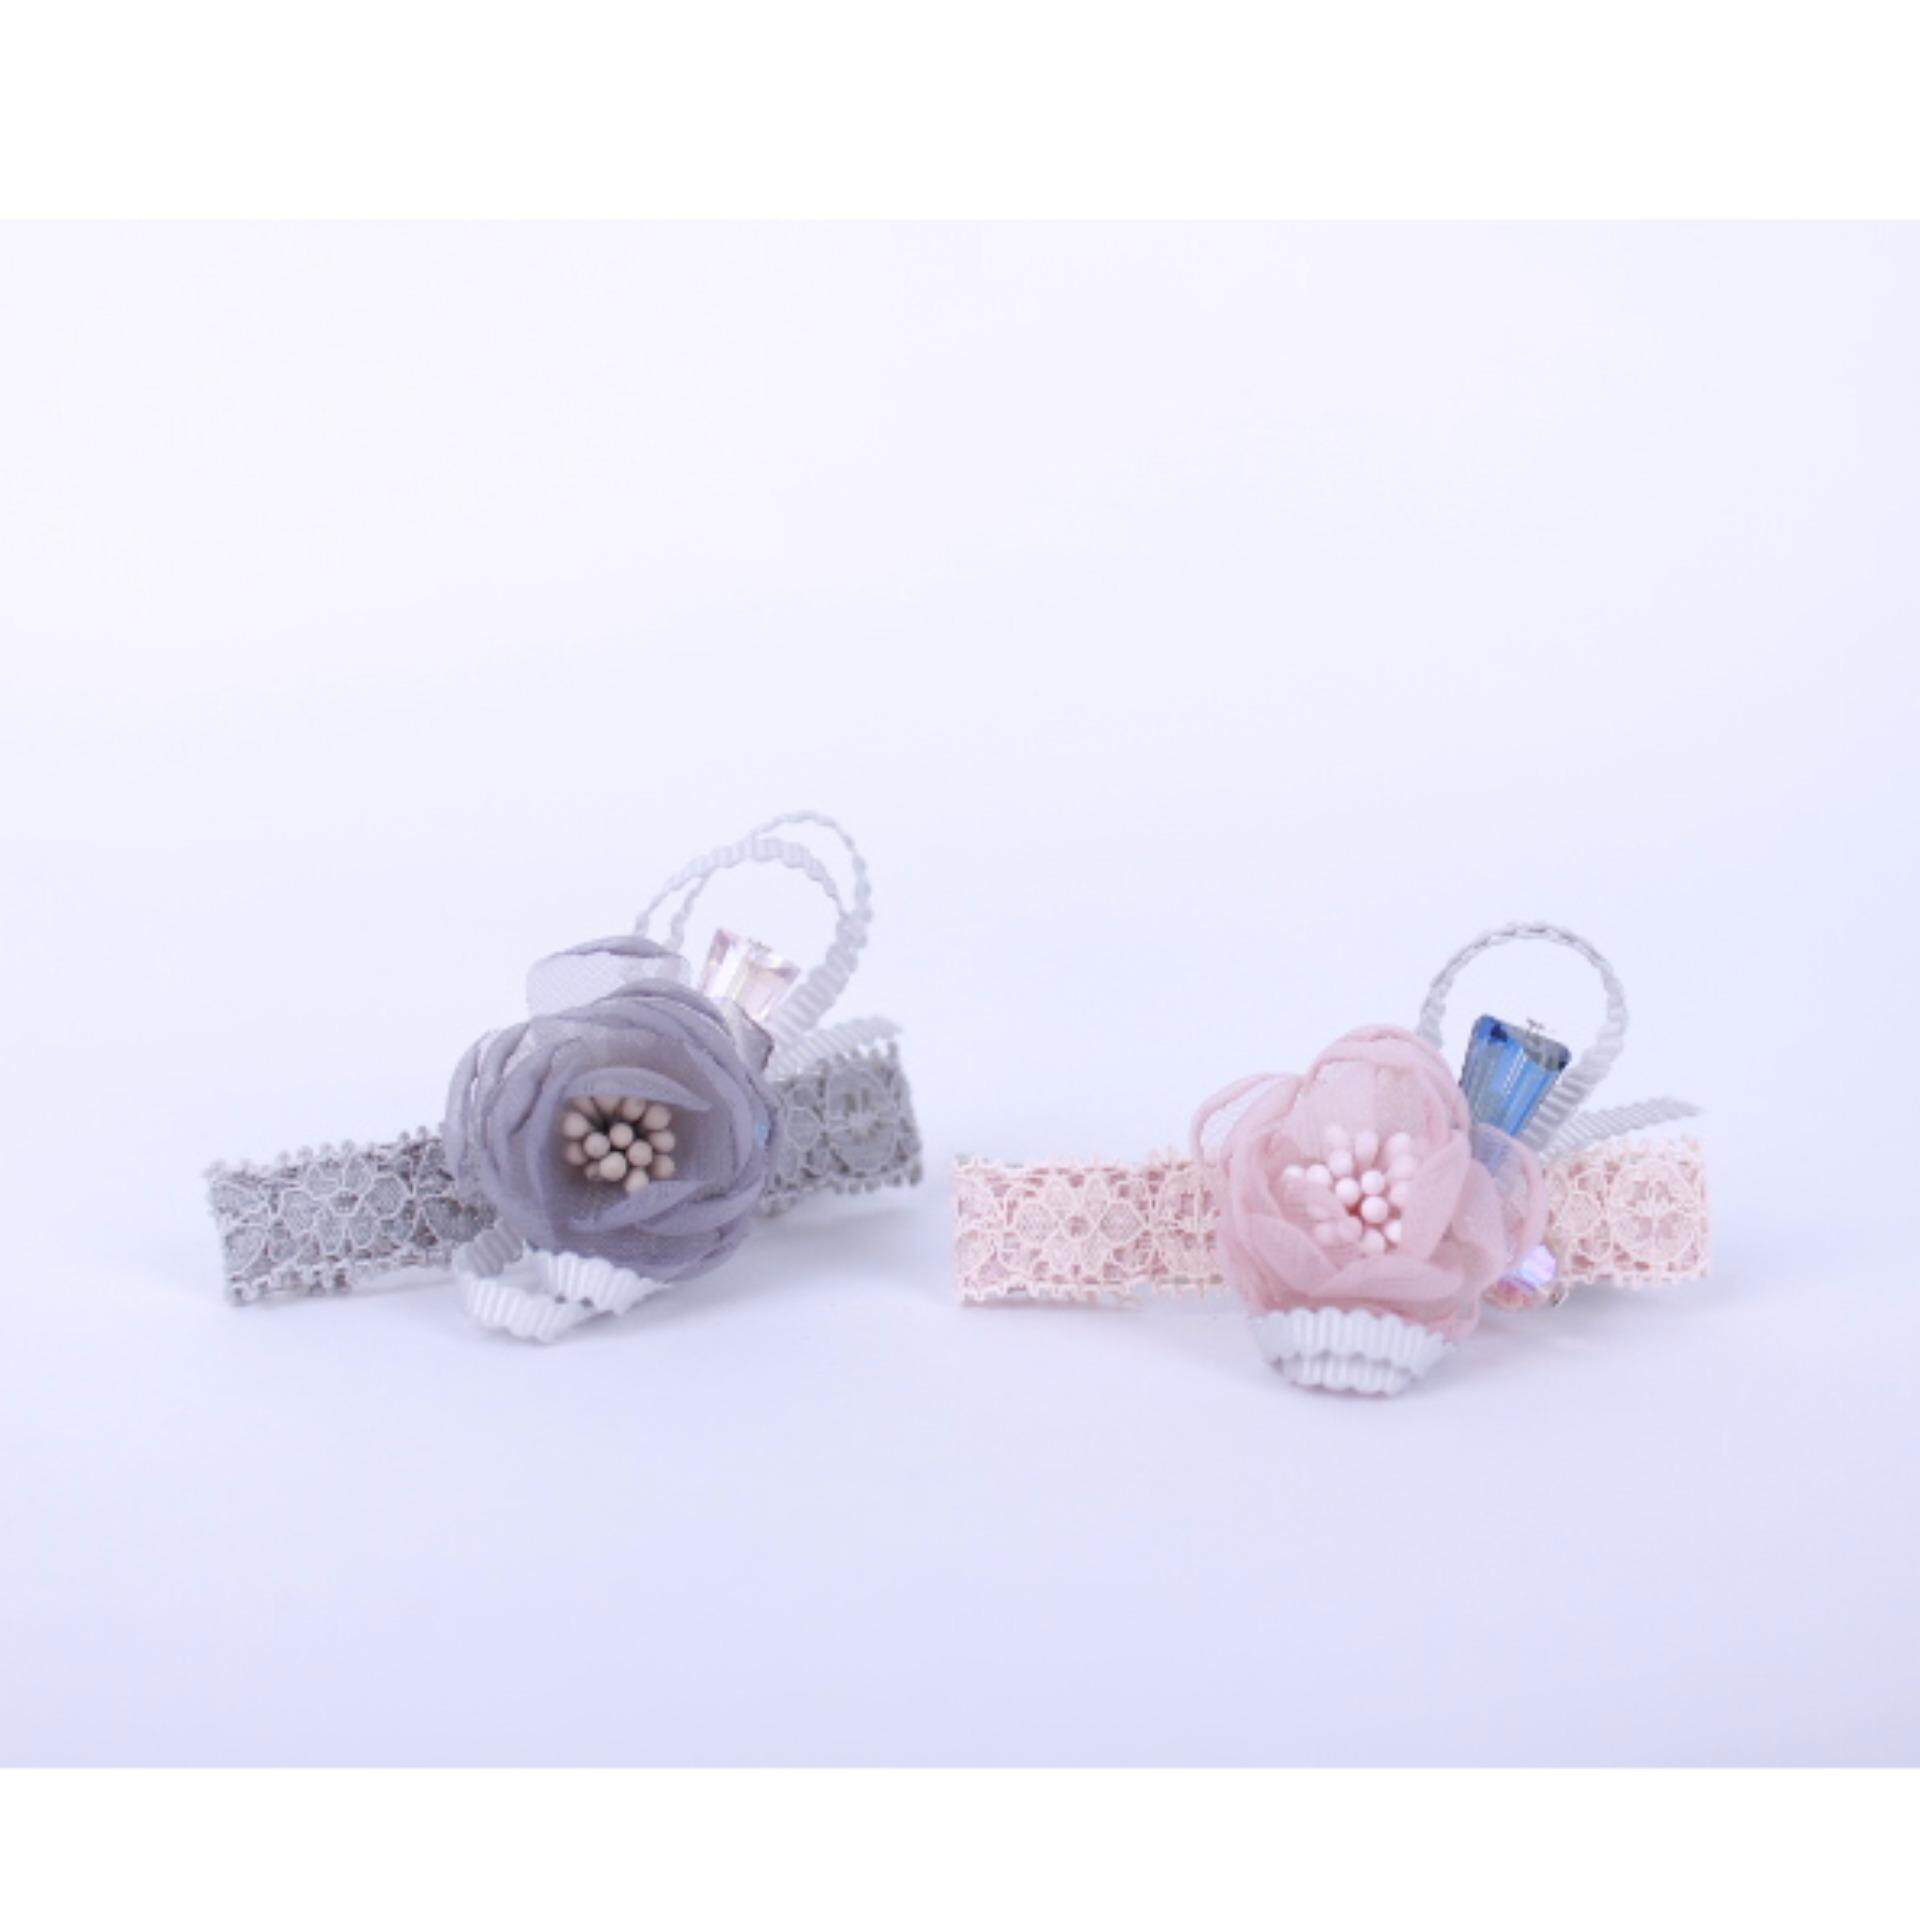 AFGY FGA 202 70303 Hair Clip with Crystal Glass Jewel Accents (Length 6.5cm) x 2unit